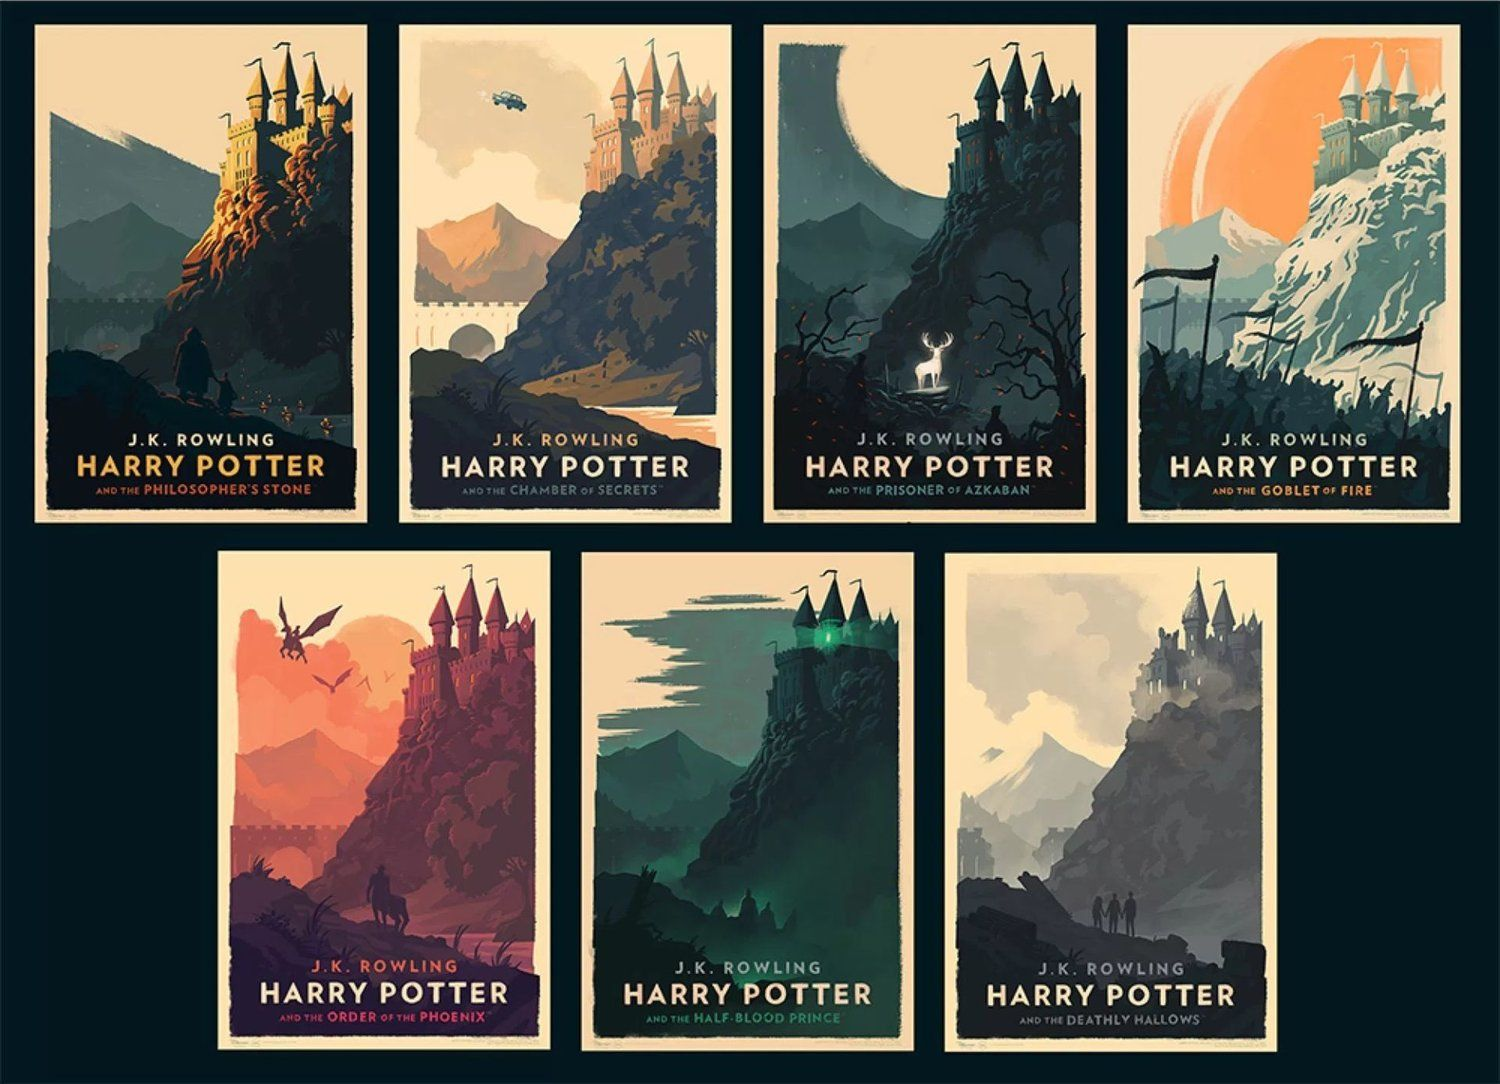 Take A Look At This Wonderful Series Of Unreleased Harry Potter Cover Art From Olly Moss Geektyrant Harry Potter Poster Harry Potter Book Covers Olly Moss